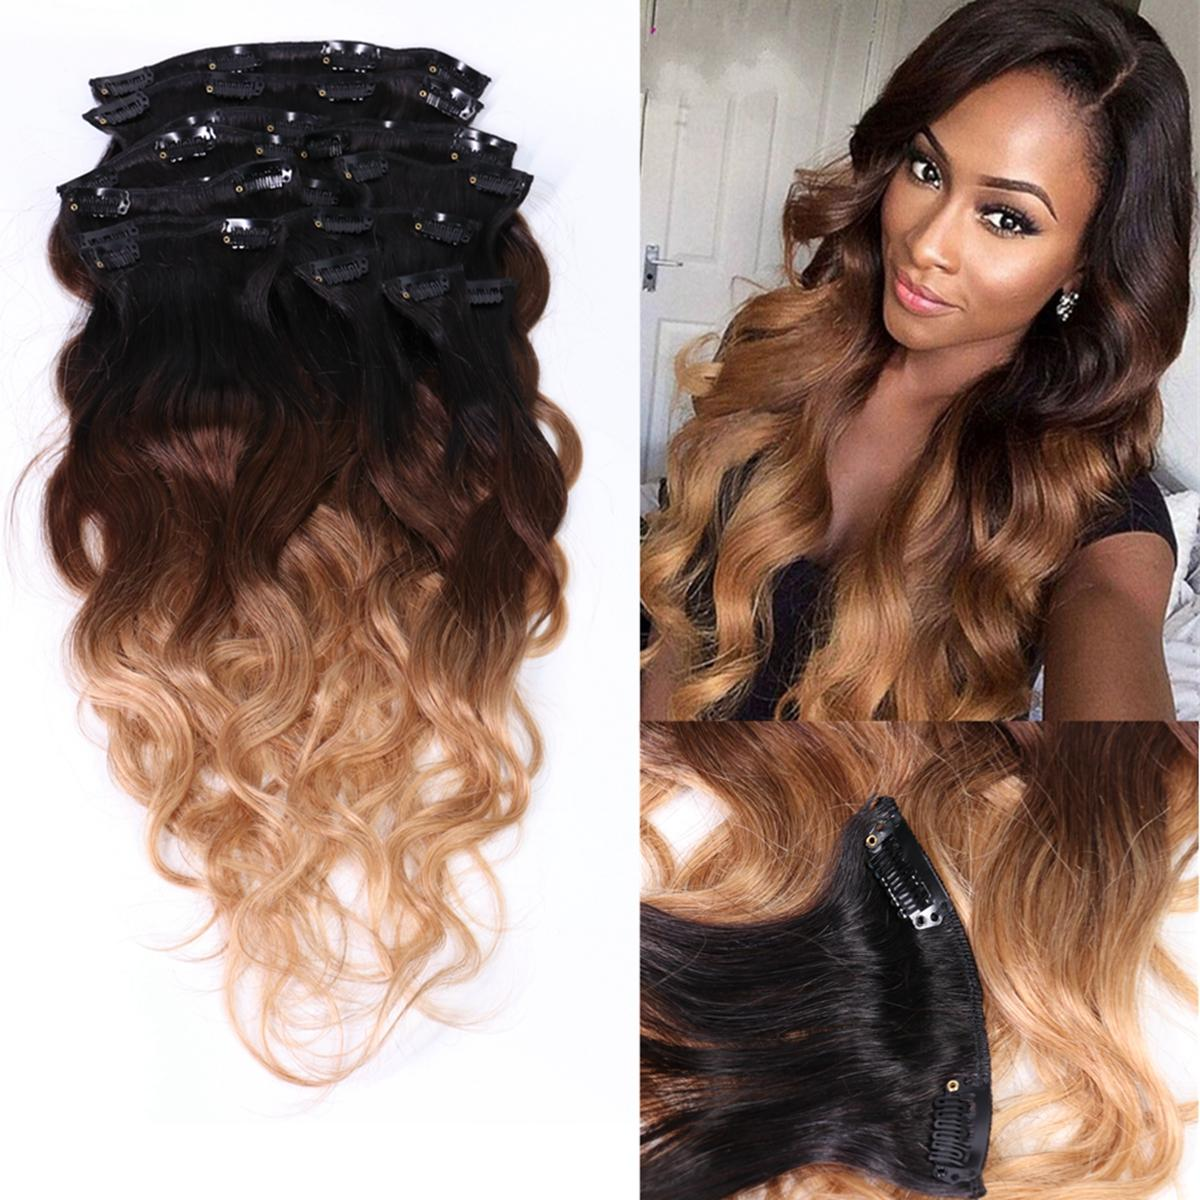 Choshim Slove Rosa T1b427 Body Wave Clip In Hair Extensions 100